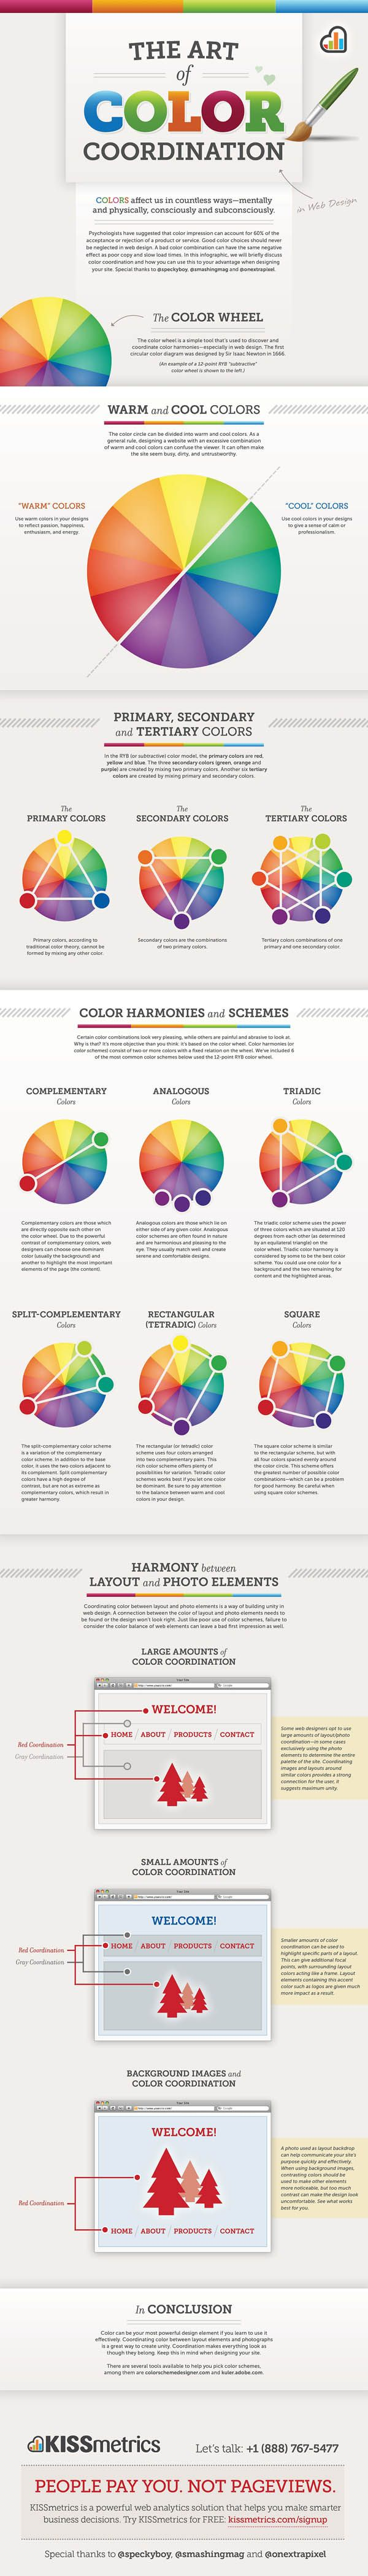 the-art-of-color-coordination-in-web-desing-infographic